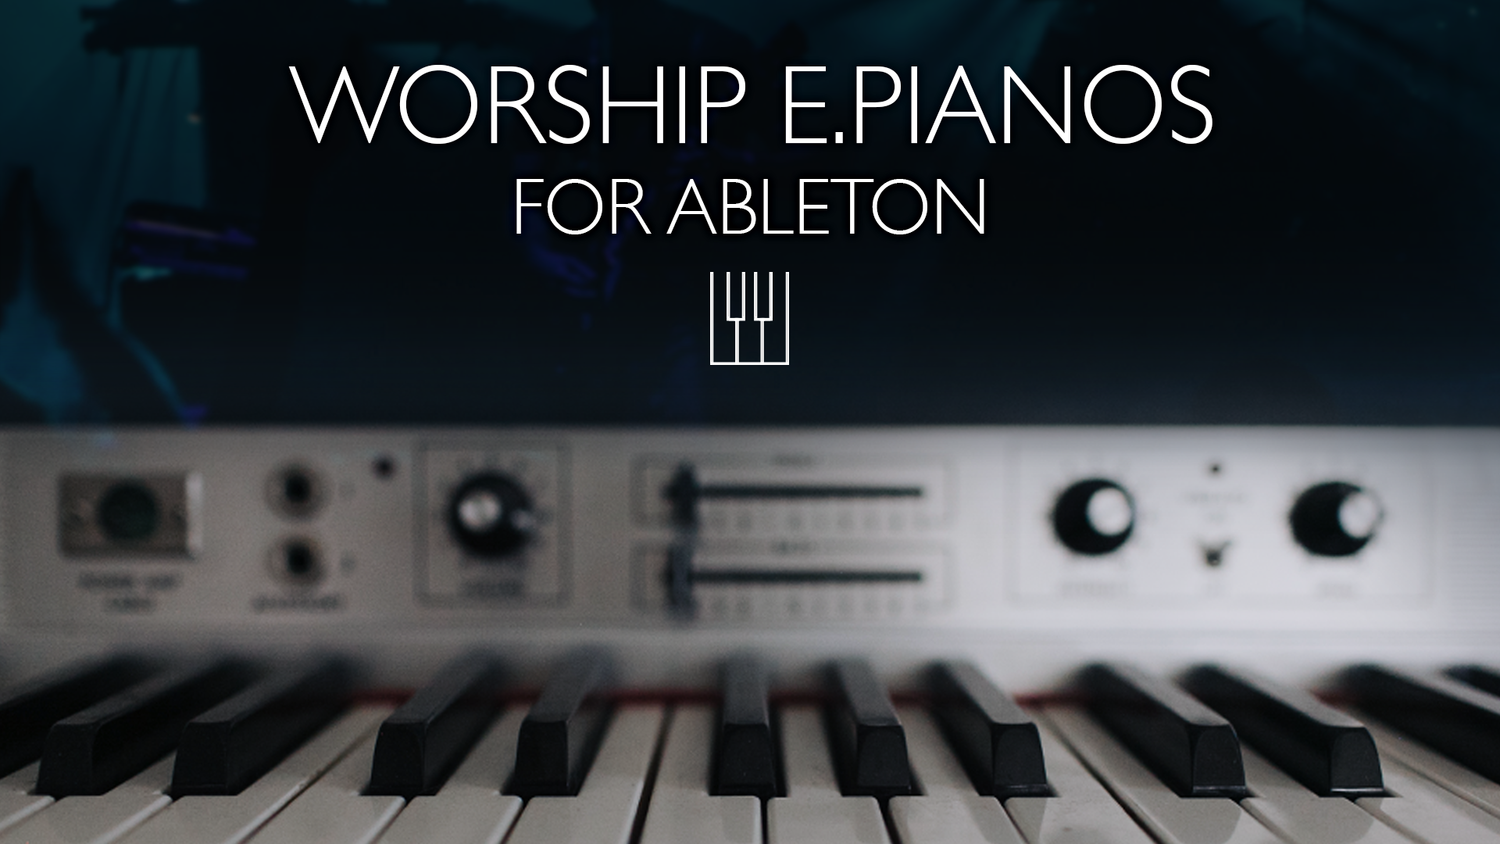 Worship Electric Pianos for Ableton is Now Available! — MainStage